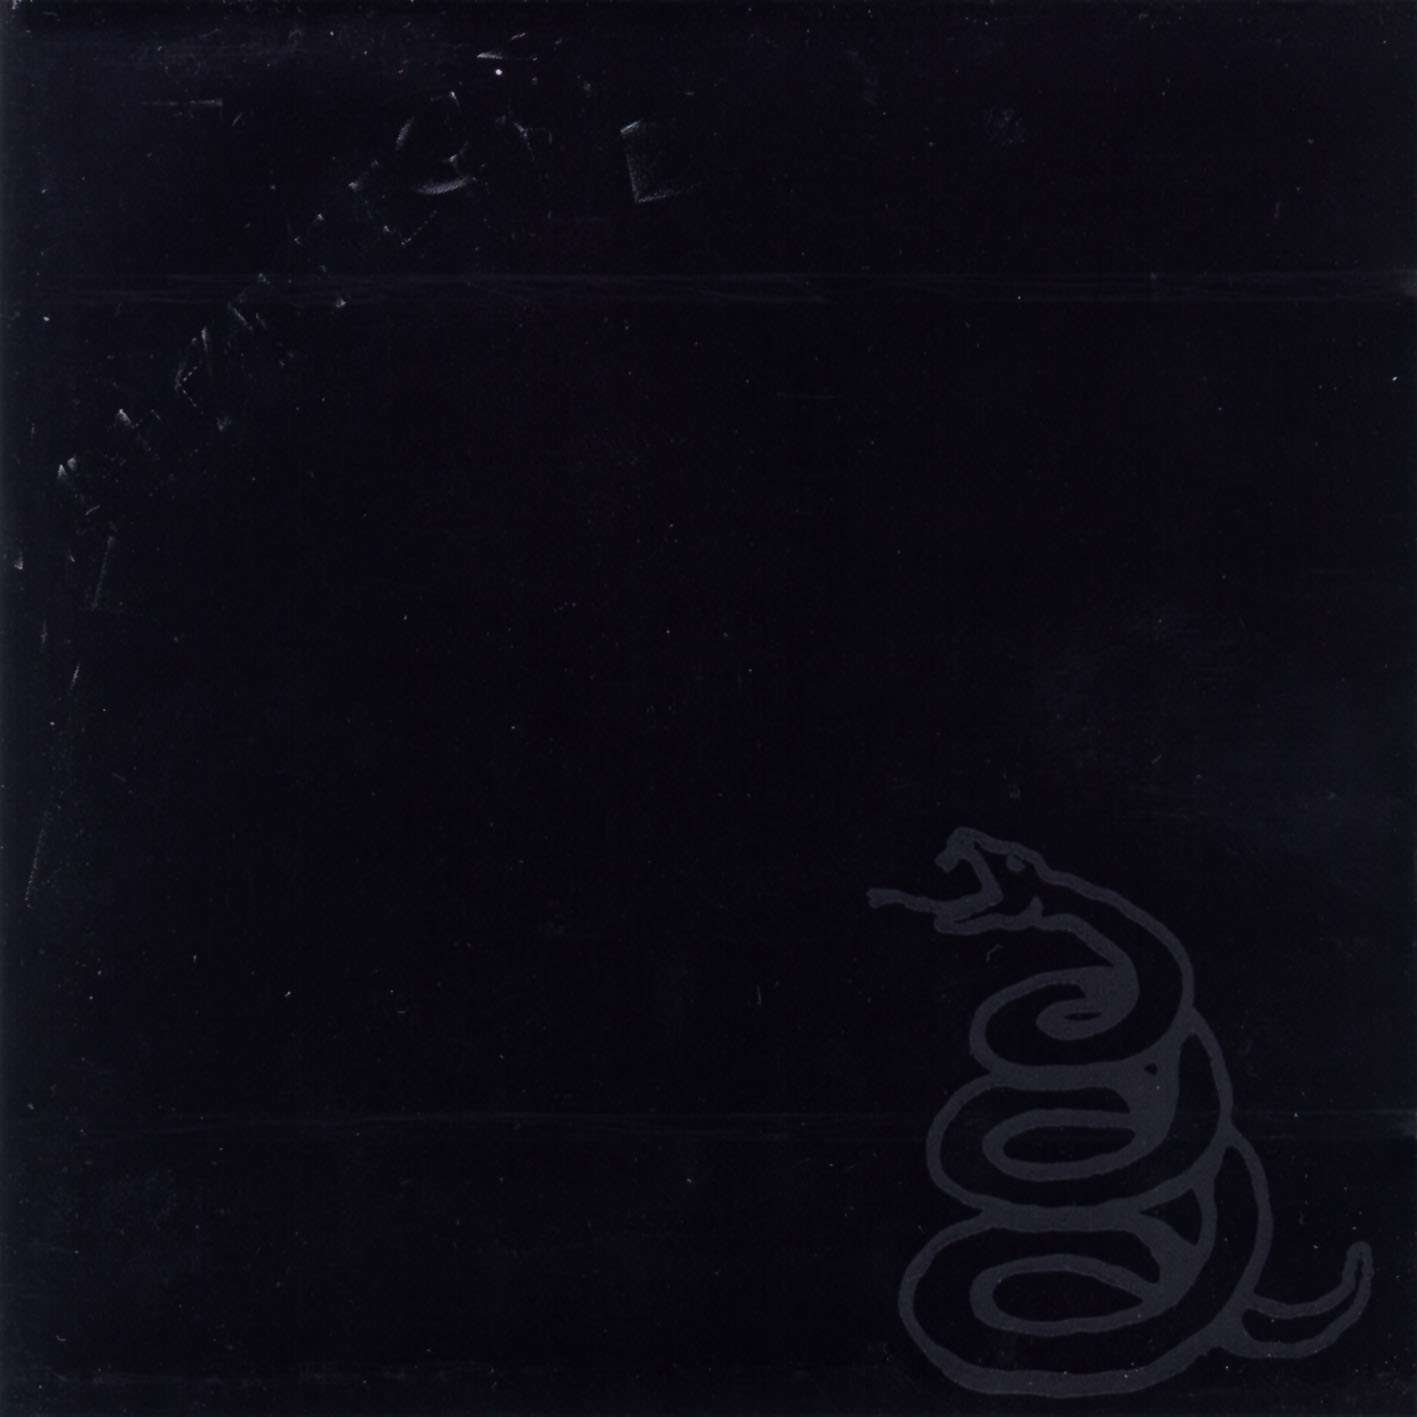 Metallica Black Album Wallpapers - Wallpaper Cave